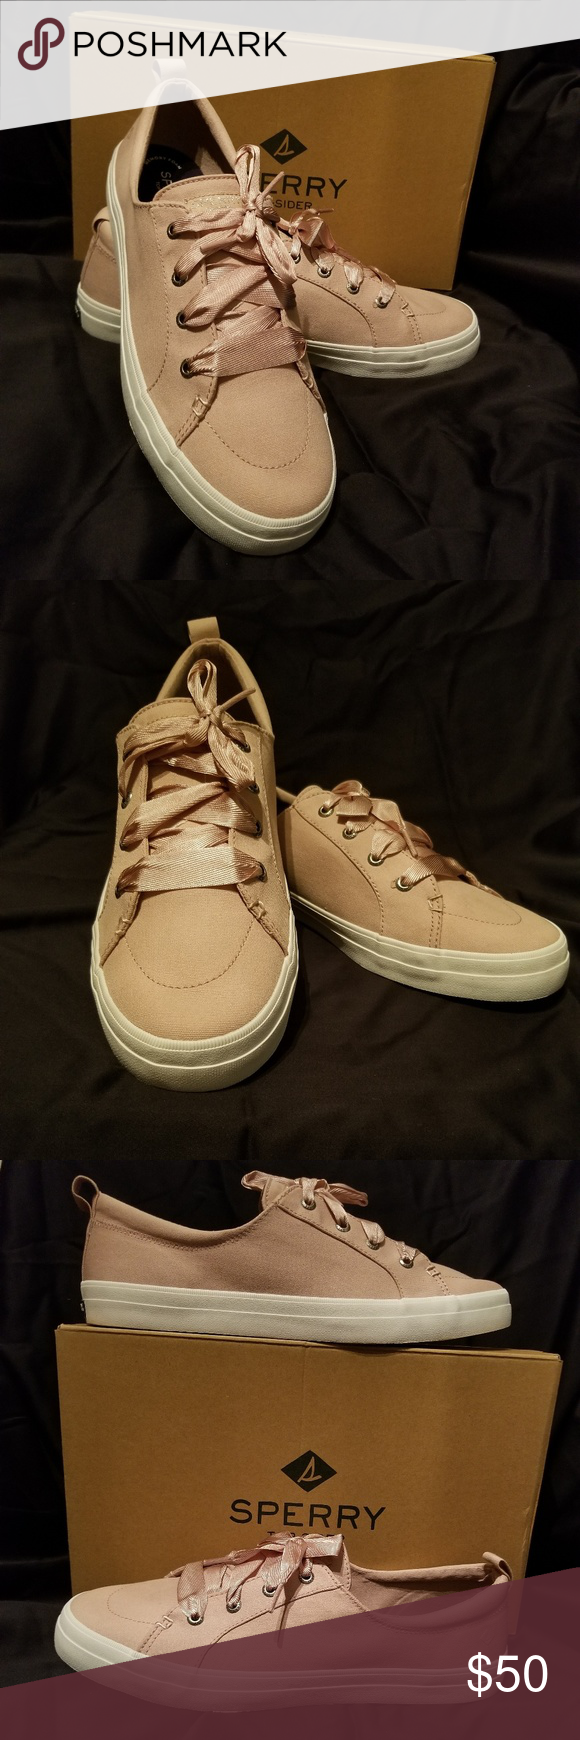 50% off vast selection performance sportswear Spotted while shopping on Poshmark: Sperry Crest Vibe Satin ...